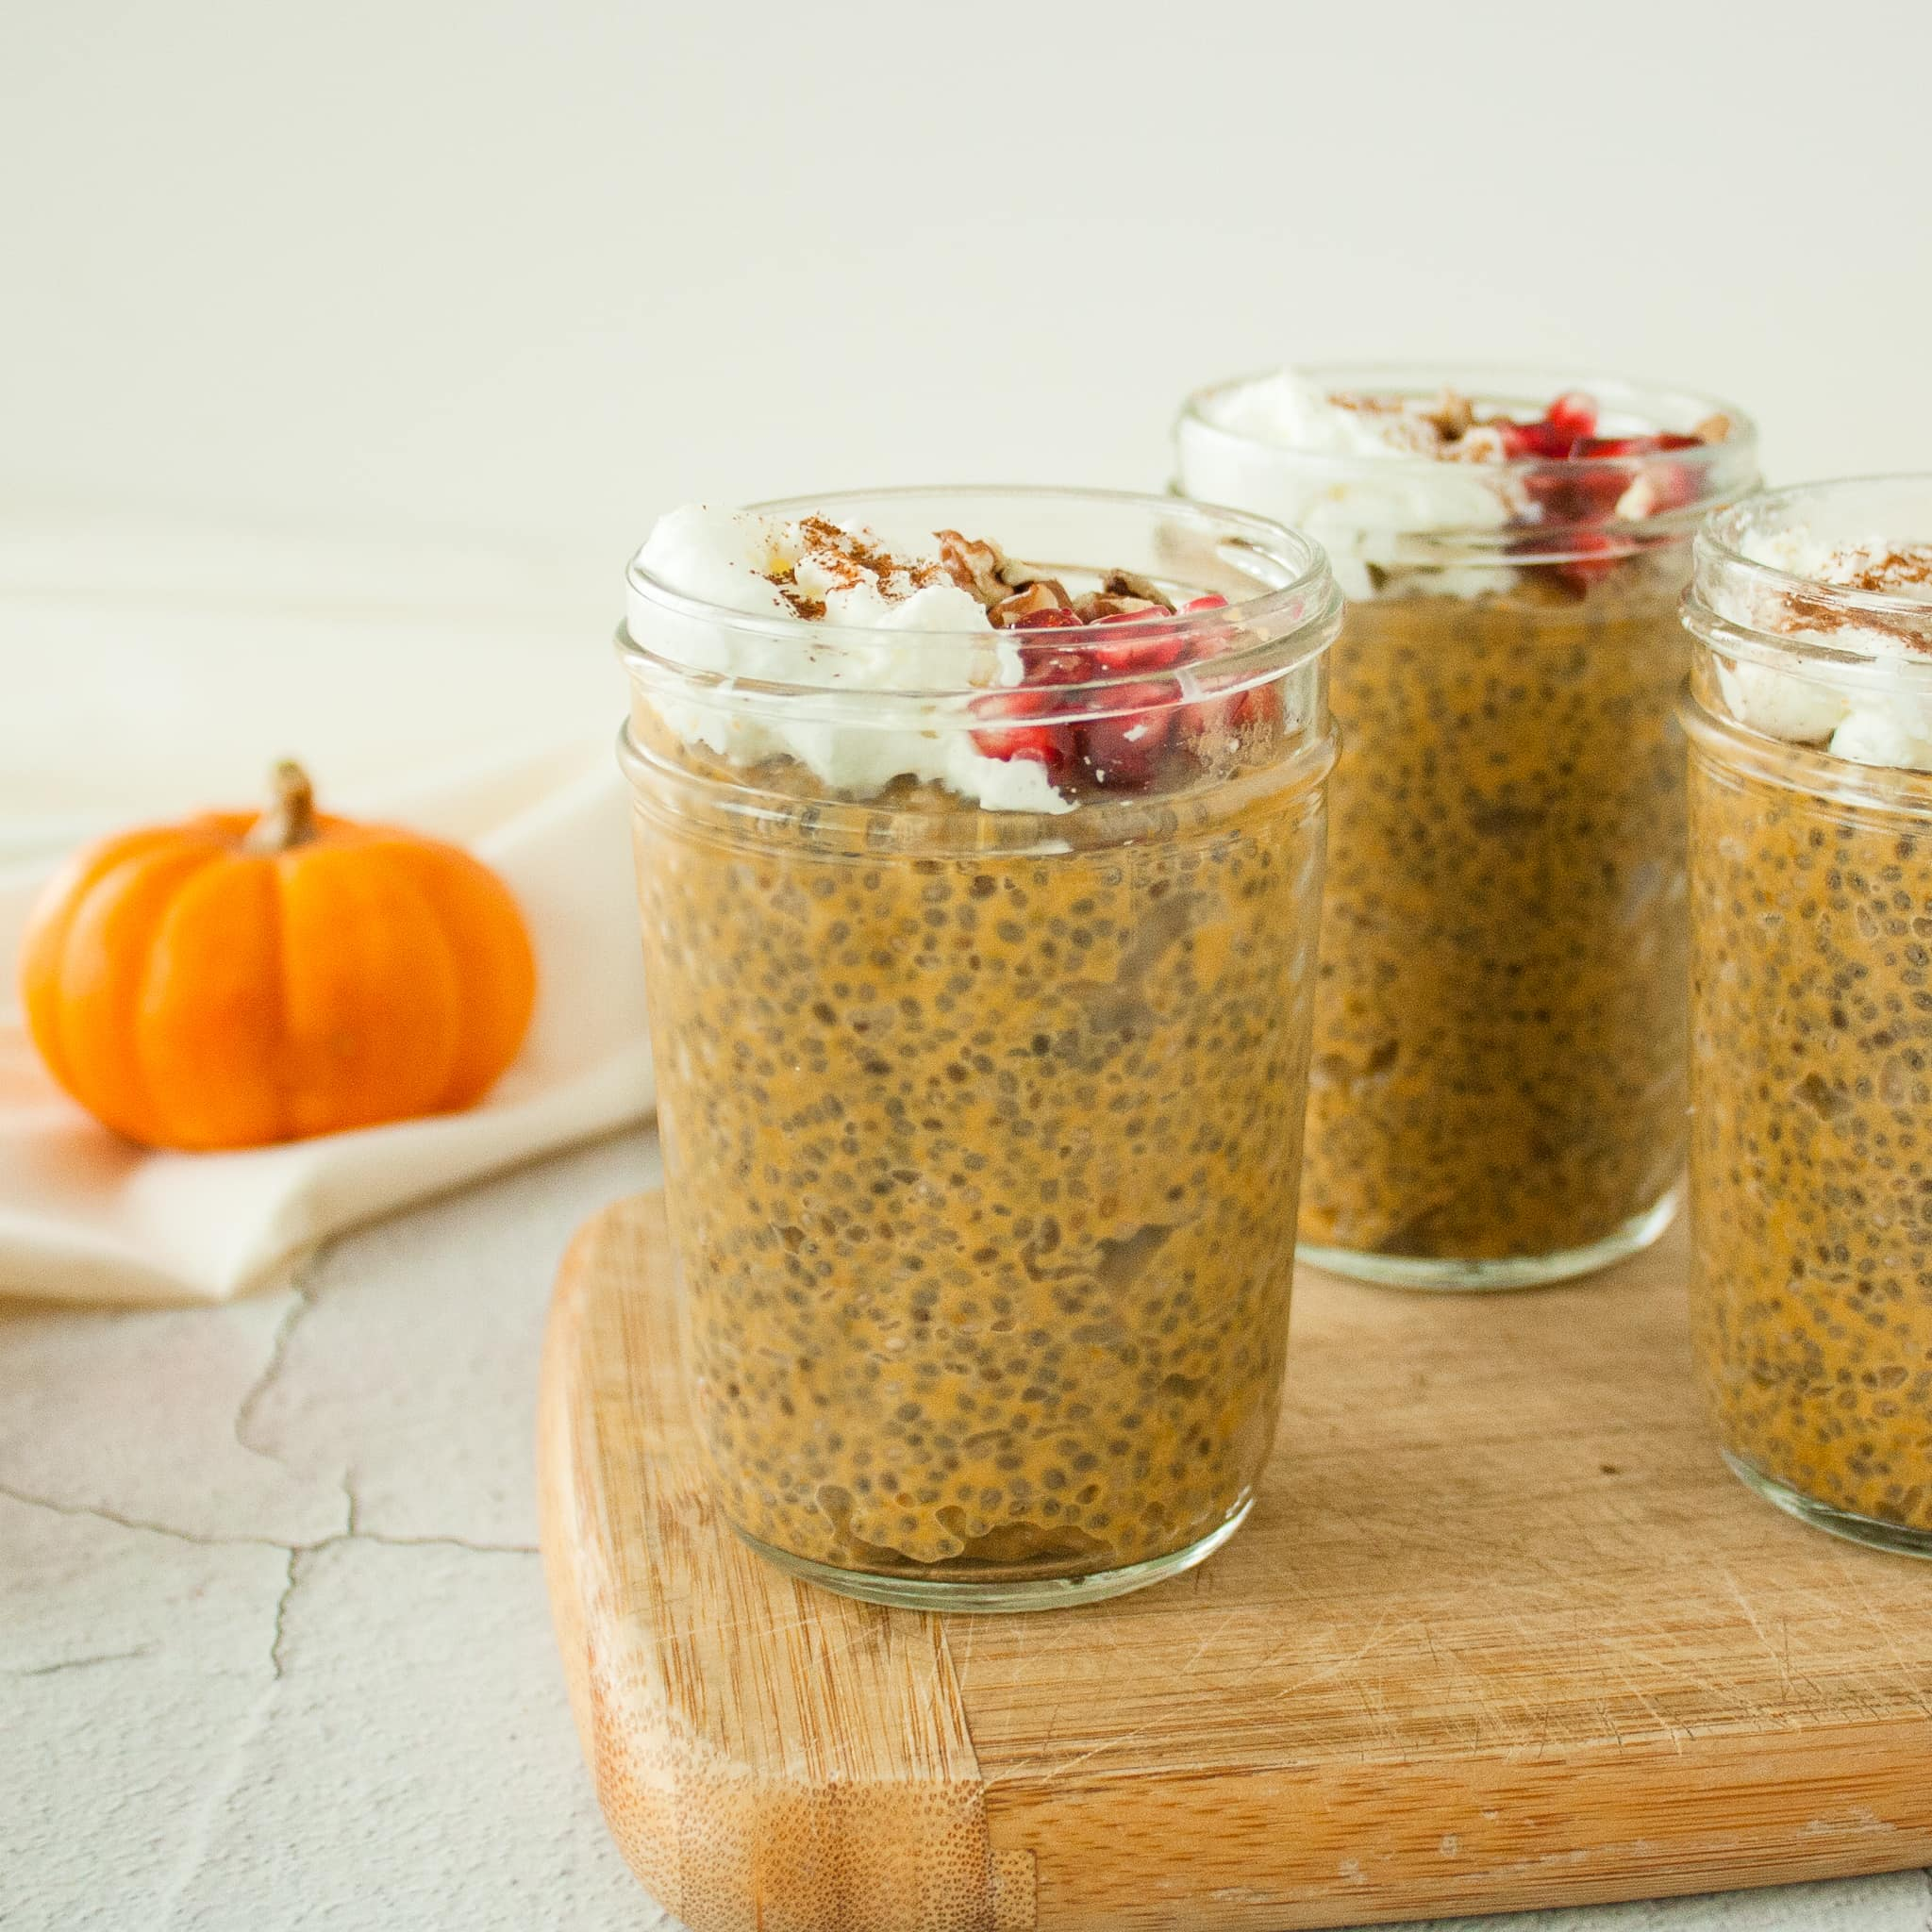 Cups of pumpkin chia pudding